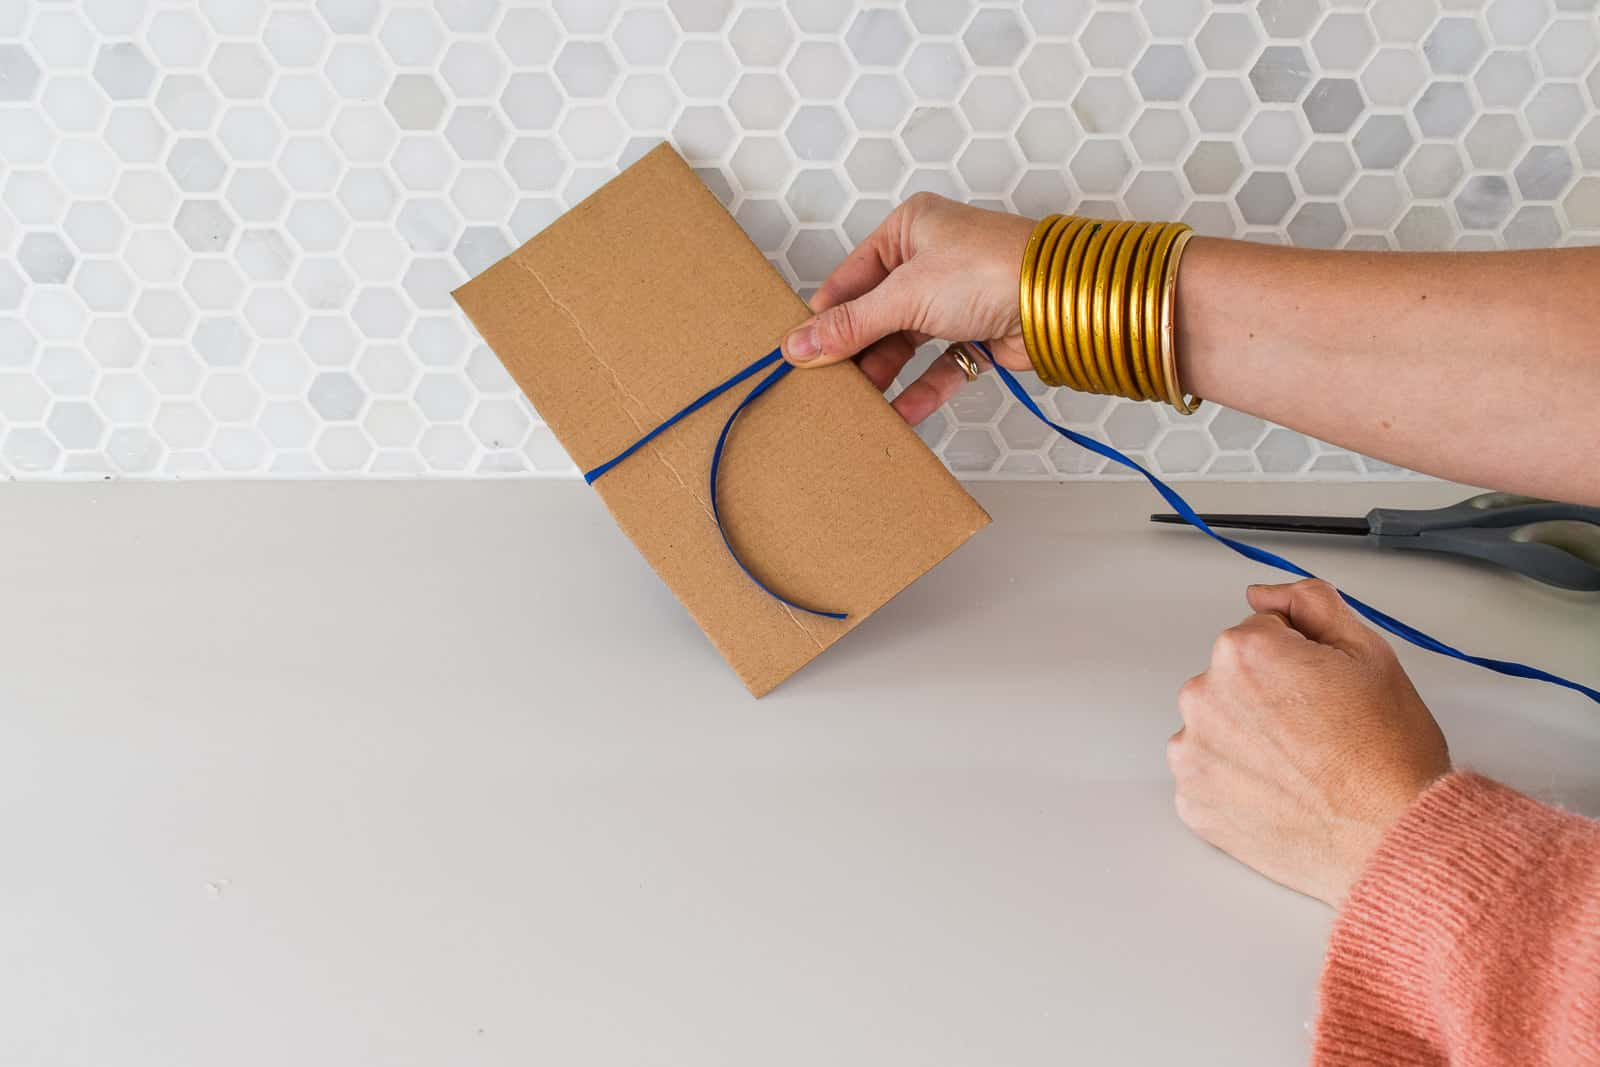 wrapping raffia around cardboard